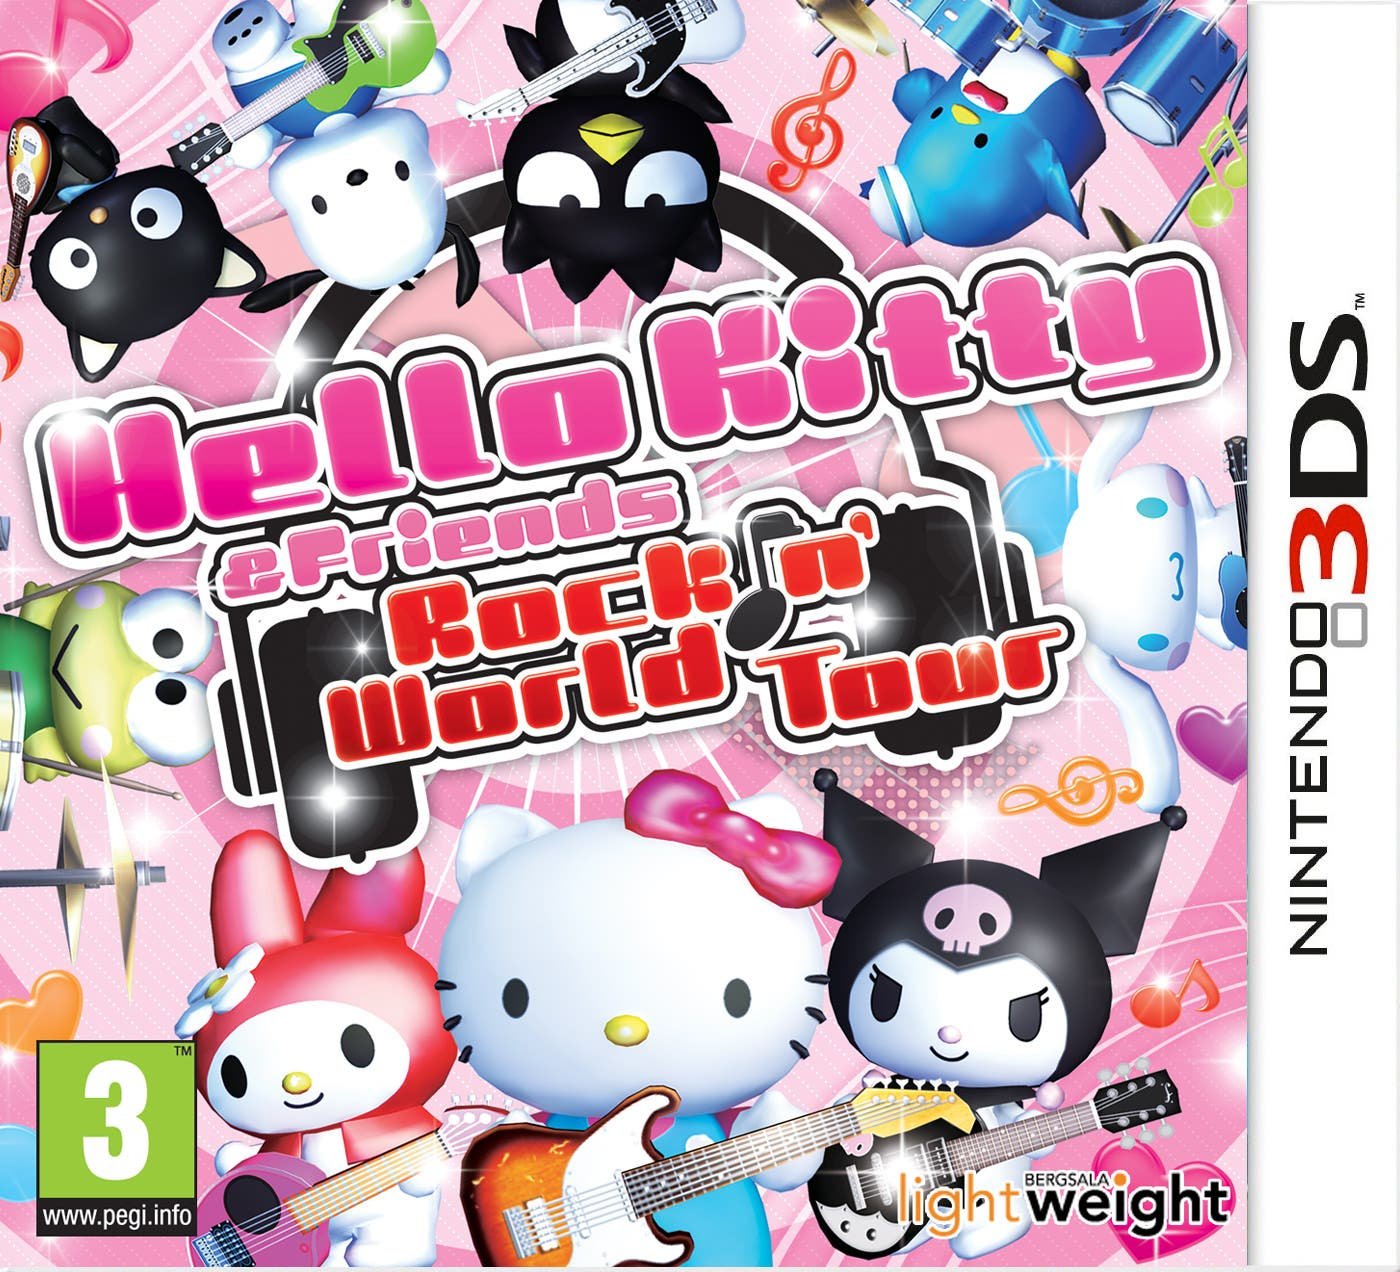 Nuevo trailer para Europa y fecha de salida para 'Hello Kitty & Friends: Rockin' World Tour'